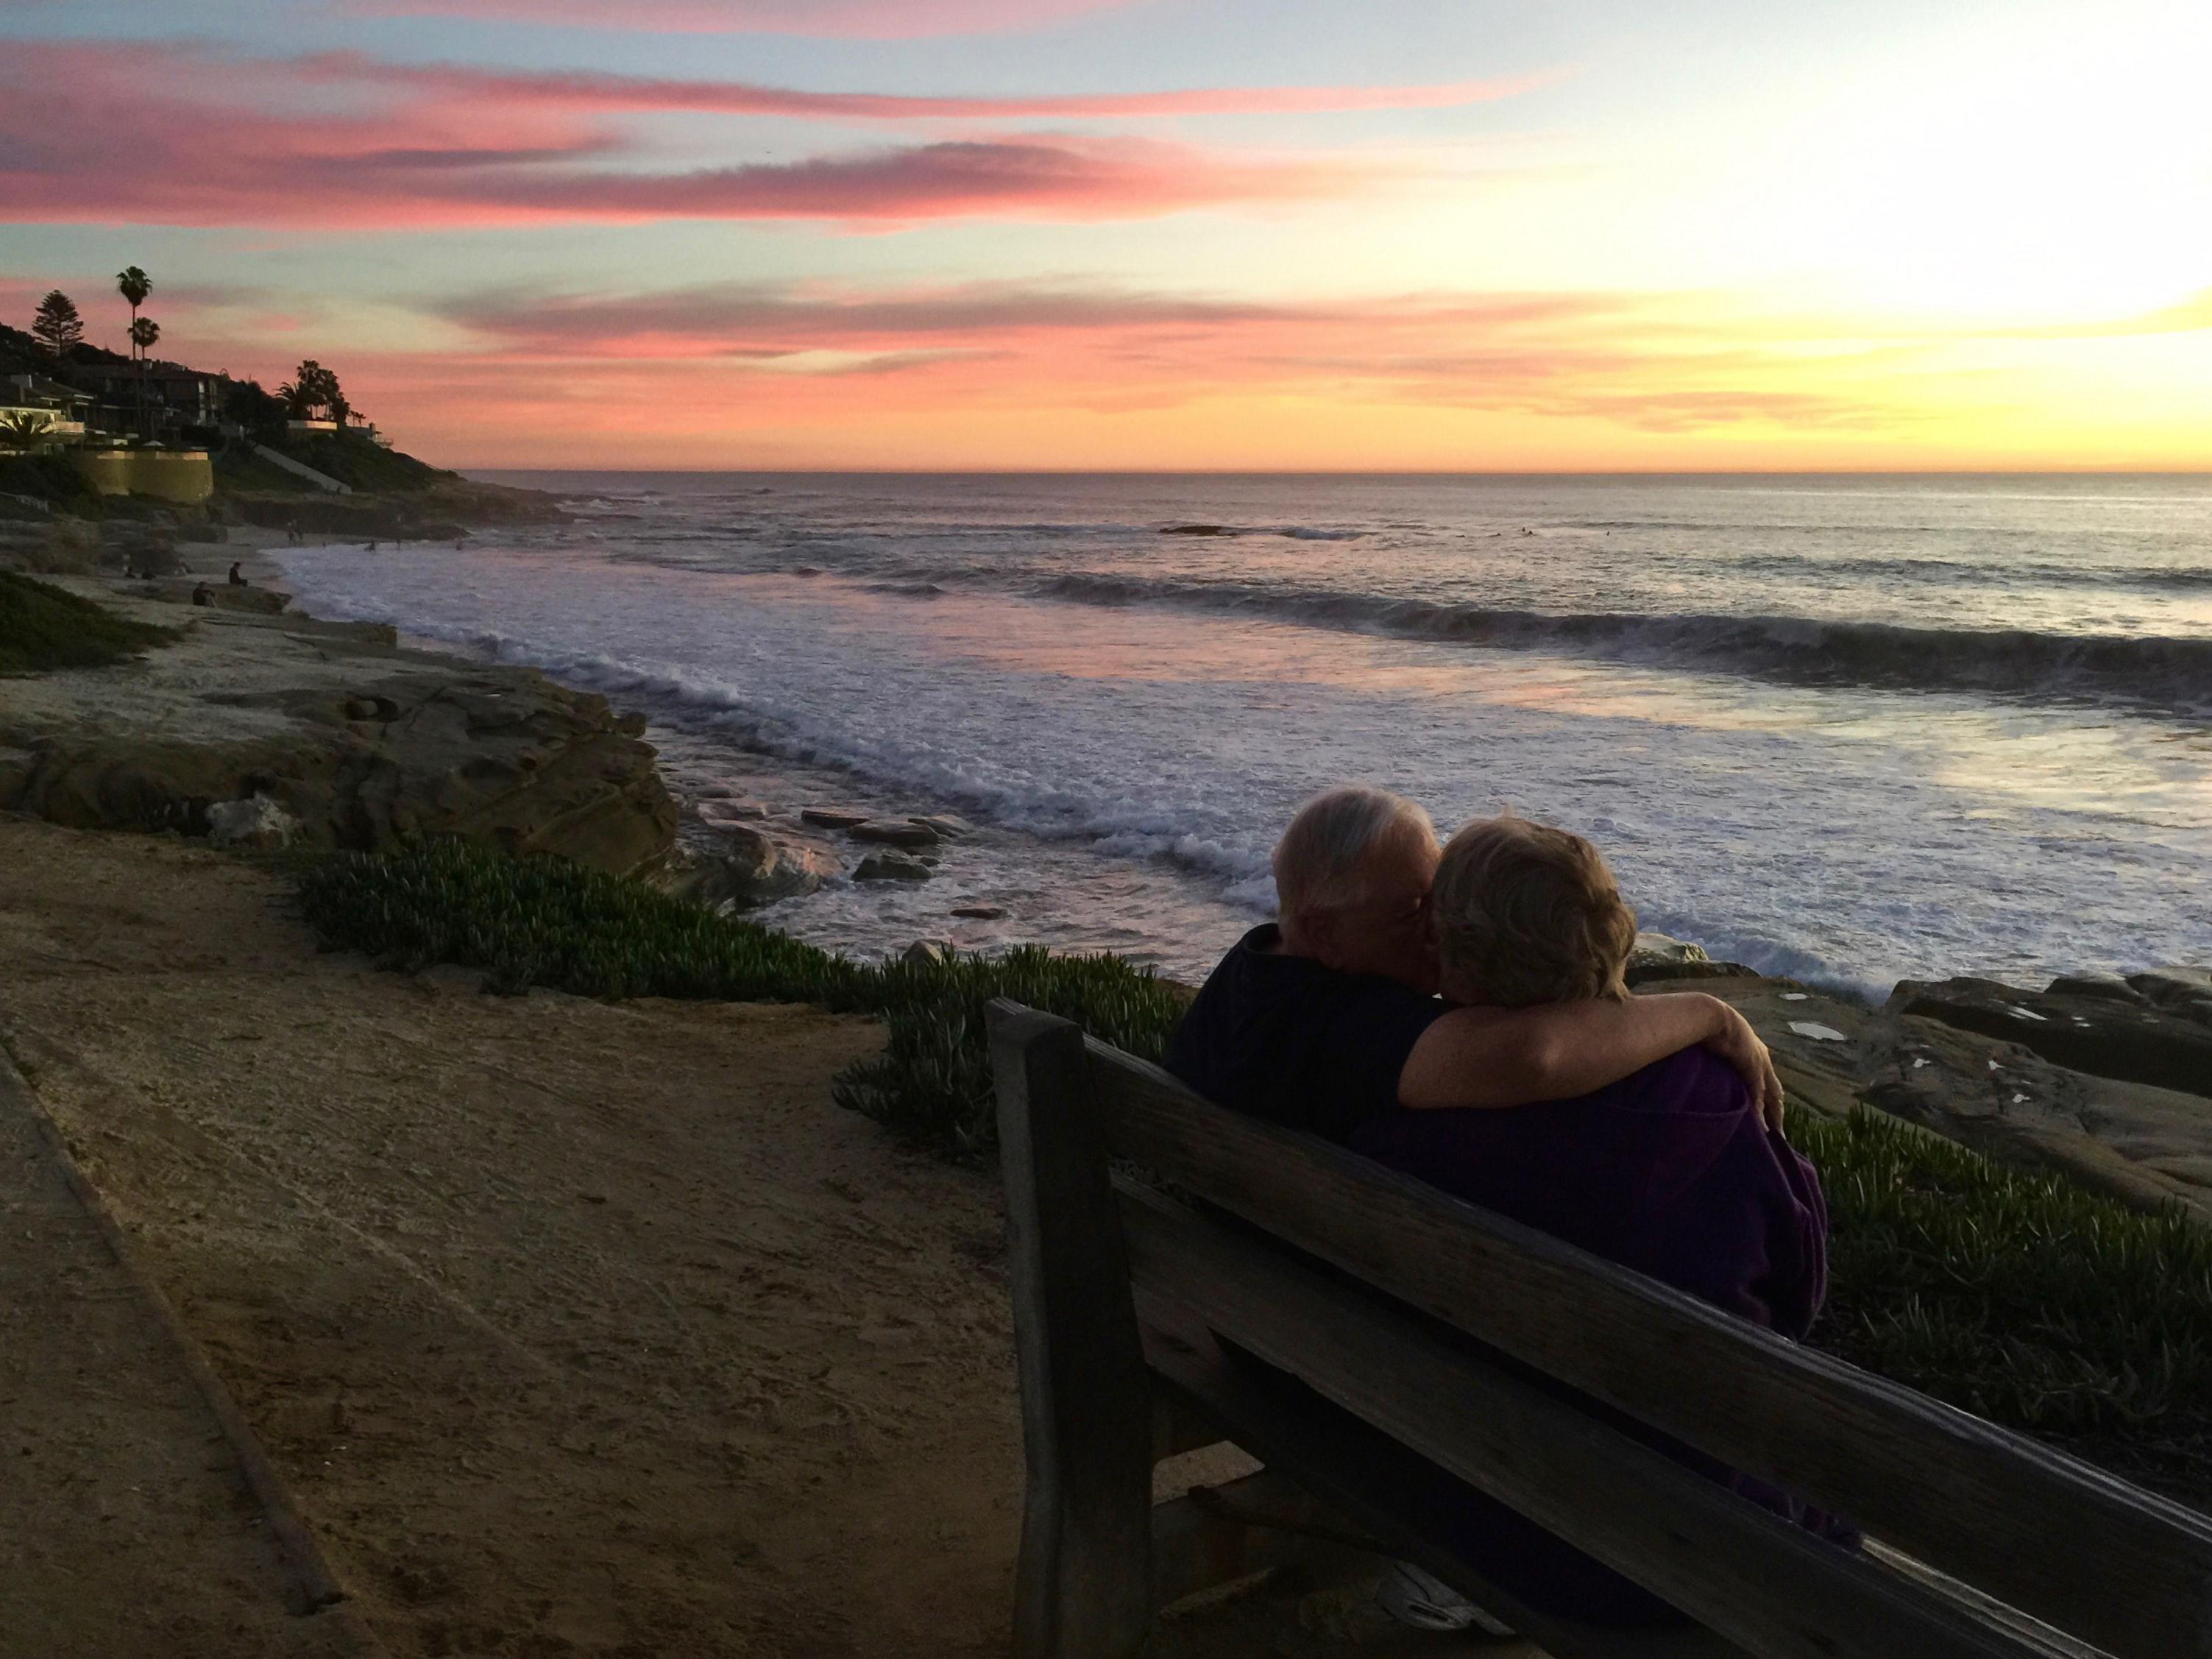 Lamar & Marsha enjoying the view. Santa Cruz was one of their favorite spots.